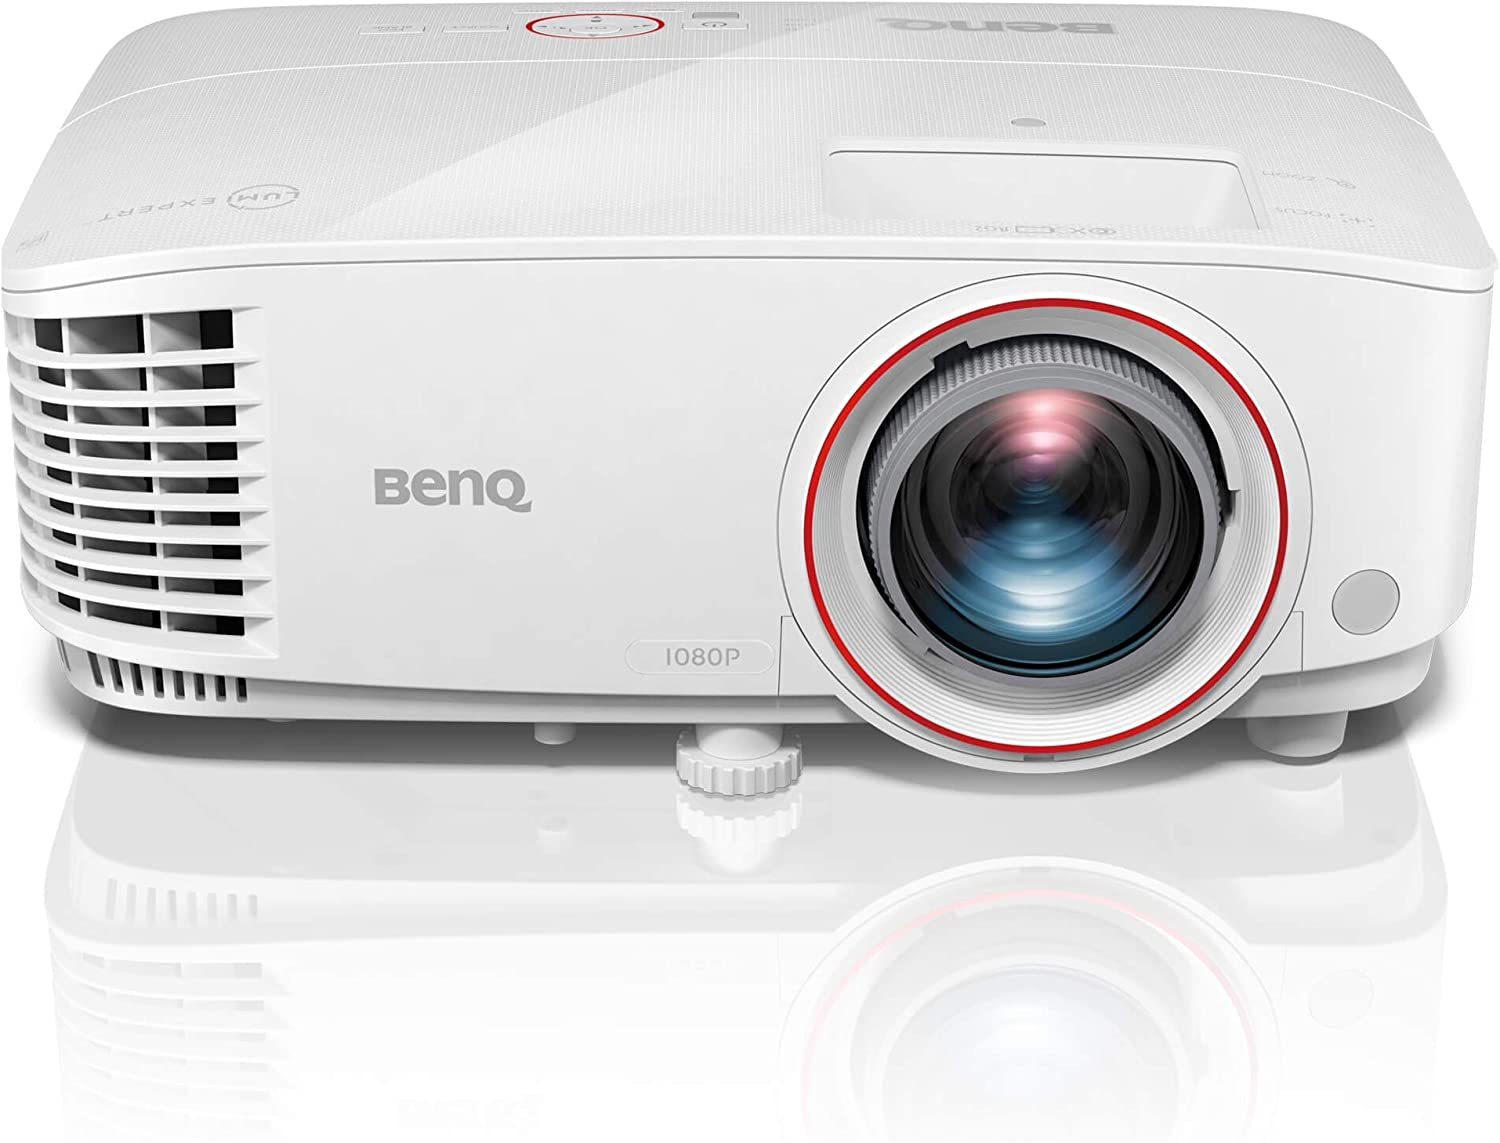 BenQ TH671ST Full HD 1080p Gaming: Max 62% OFF Projector Brightness High Popular products for